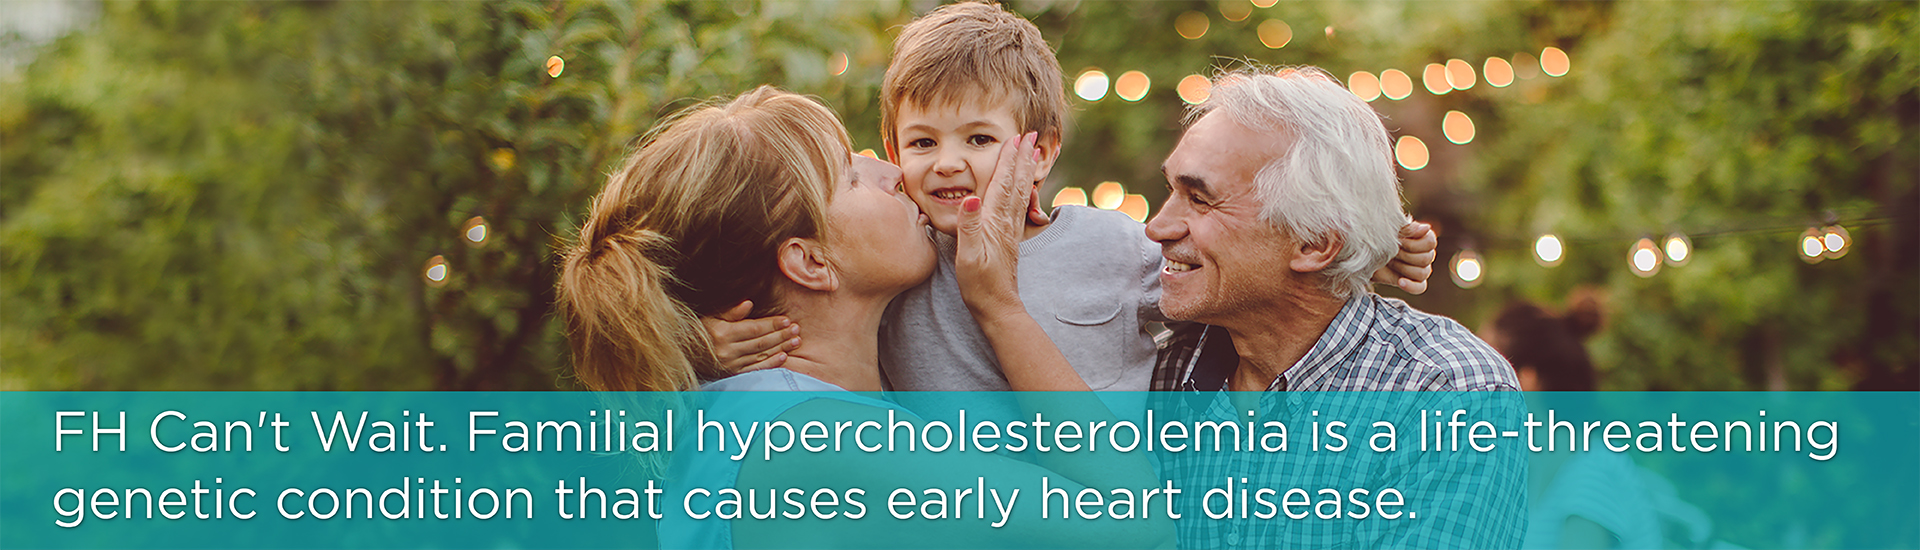 FH is a life-threatening genetic disorder that causes early heart disease.